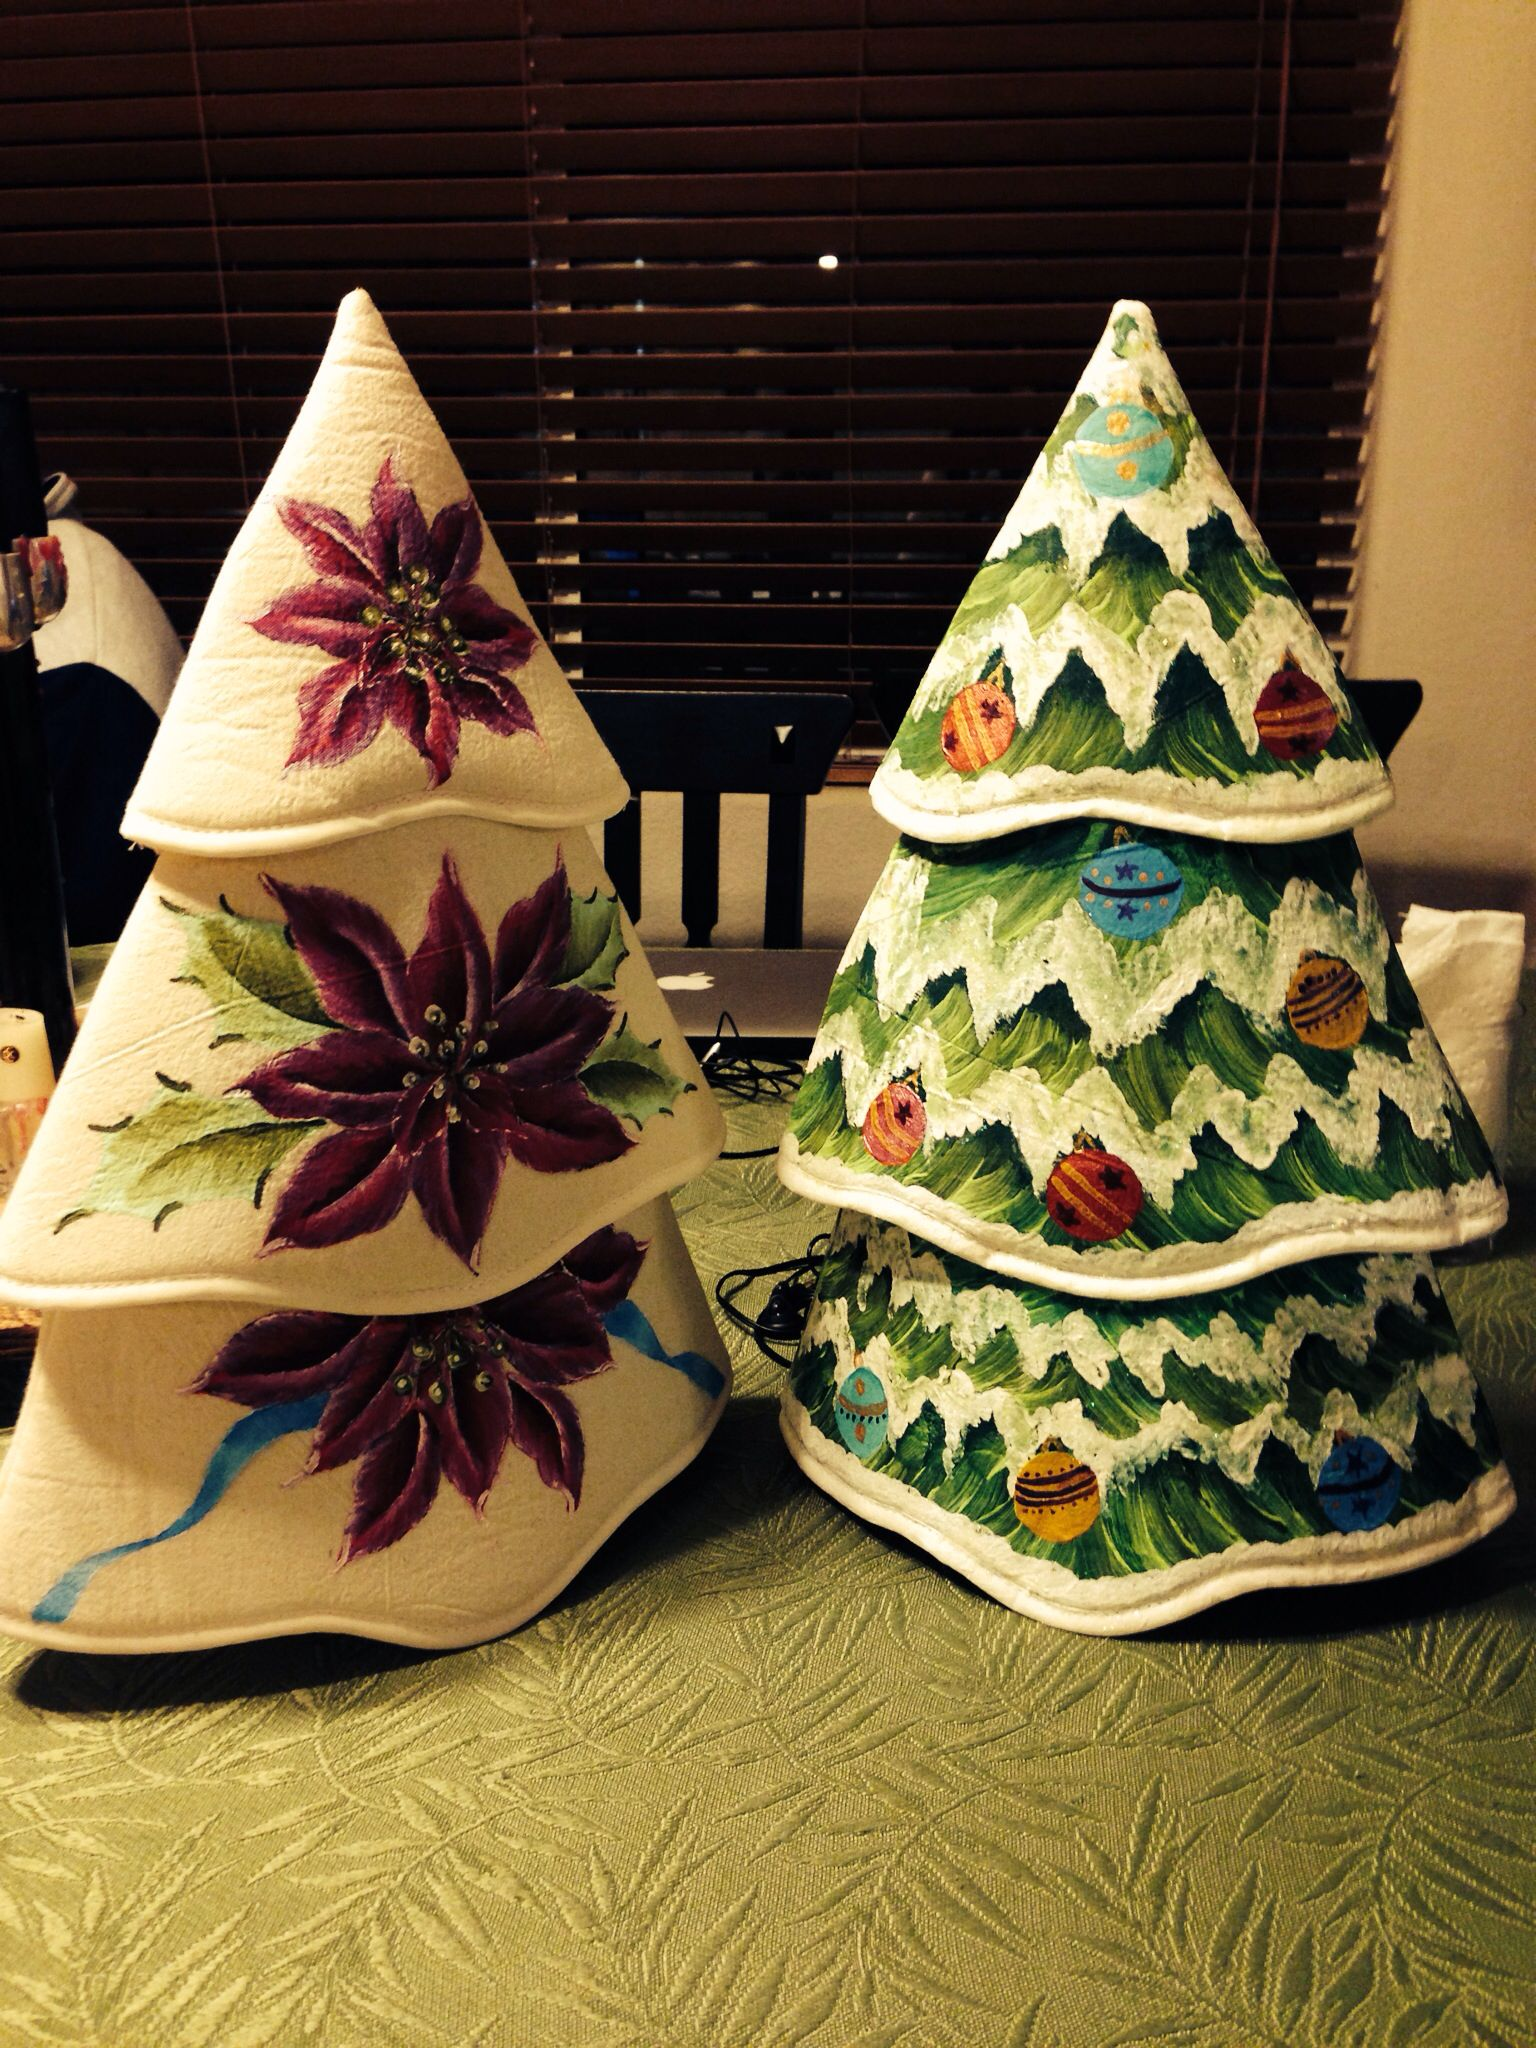 Hand made Christmas tree wine bottle covers. Makes any center table pretty.